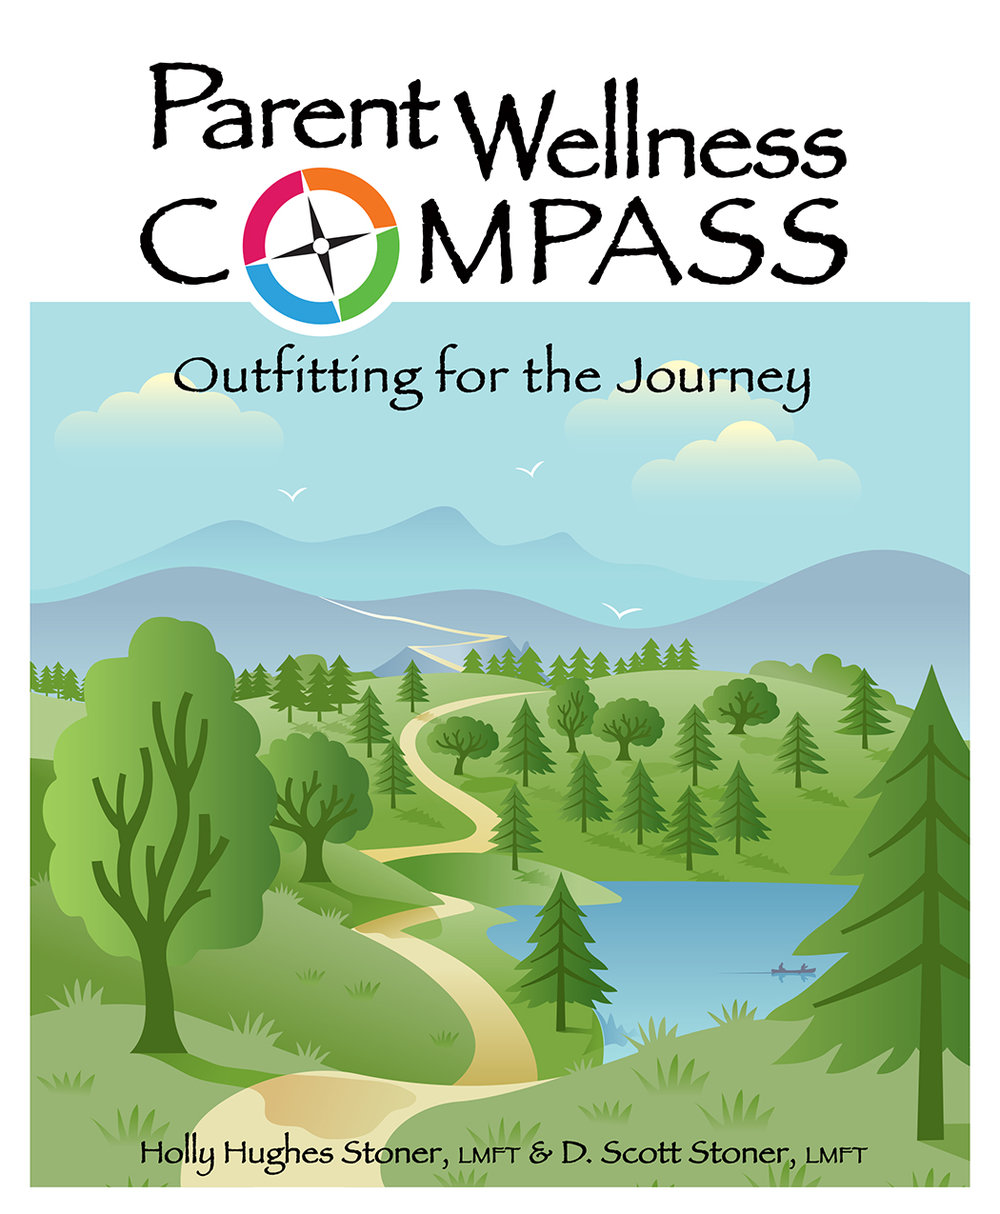 Parent Wellness Compass